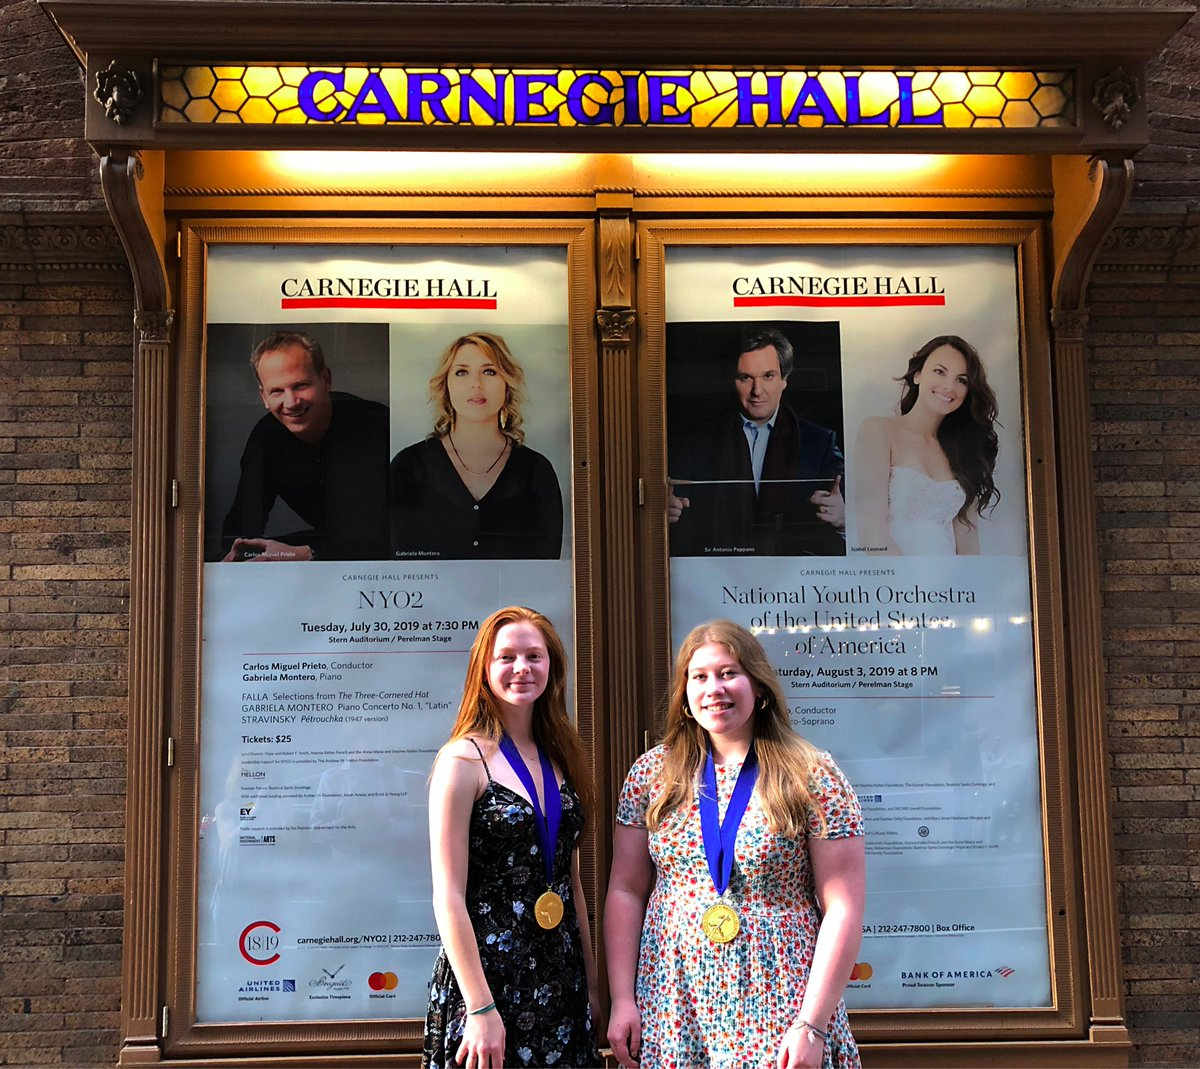 Highlights from The National Scholastic Arts Ceremony in New York!  Congratulations again to Willow Boswinkle, Carmina Lopez, Oliver Bullington-McGuire, (not pictured) Carlos Lemus Acevedo and Liliana Gallegos! <a target='_blank' href='http://twitter.com/APSArts'>@APSArts</a> <a target='_blank' href='http://twitter.com/WHSHappenings'>@WHSHappenings</a> <a target='_blank' href='http://twitter.com/principalWHS'>@principalWHS</a> <a target='_blank' href='https://t.co/TUtz58OU4G'>https://t.co/TUtz58OU4G</a>